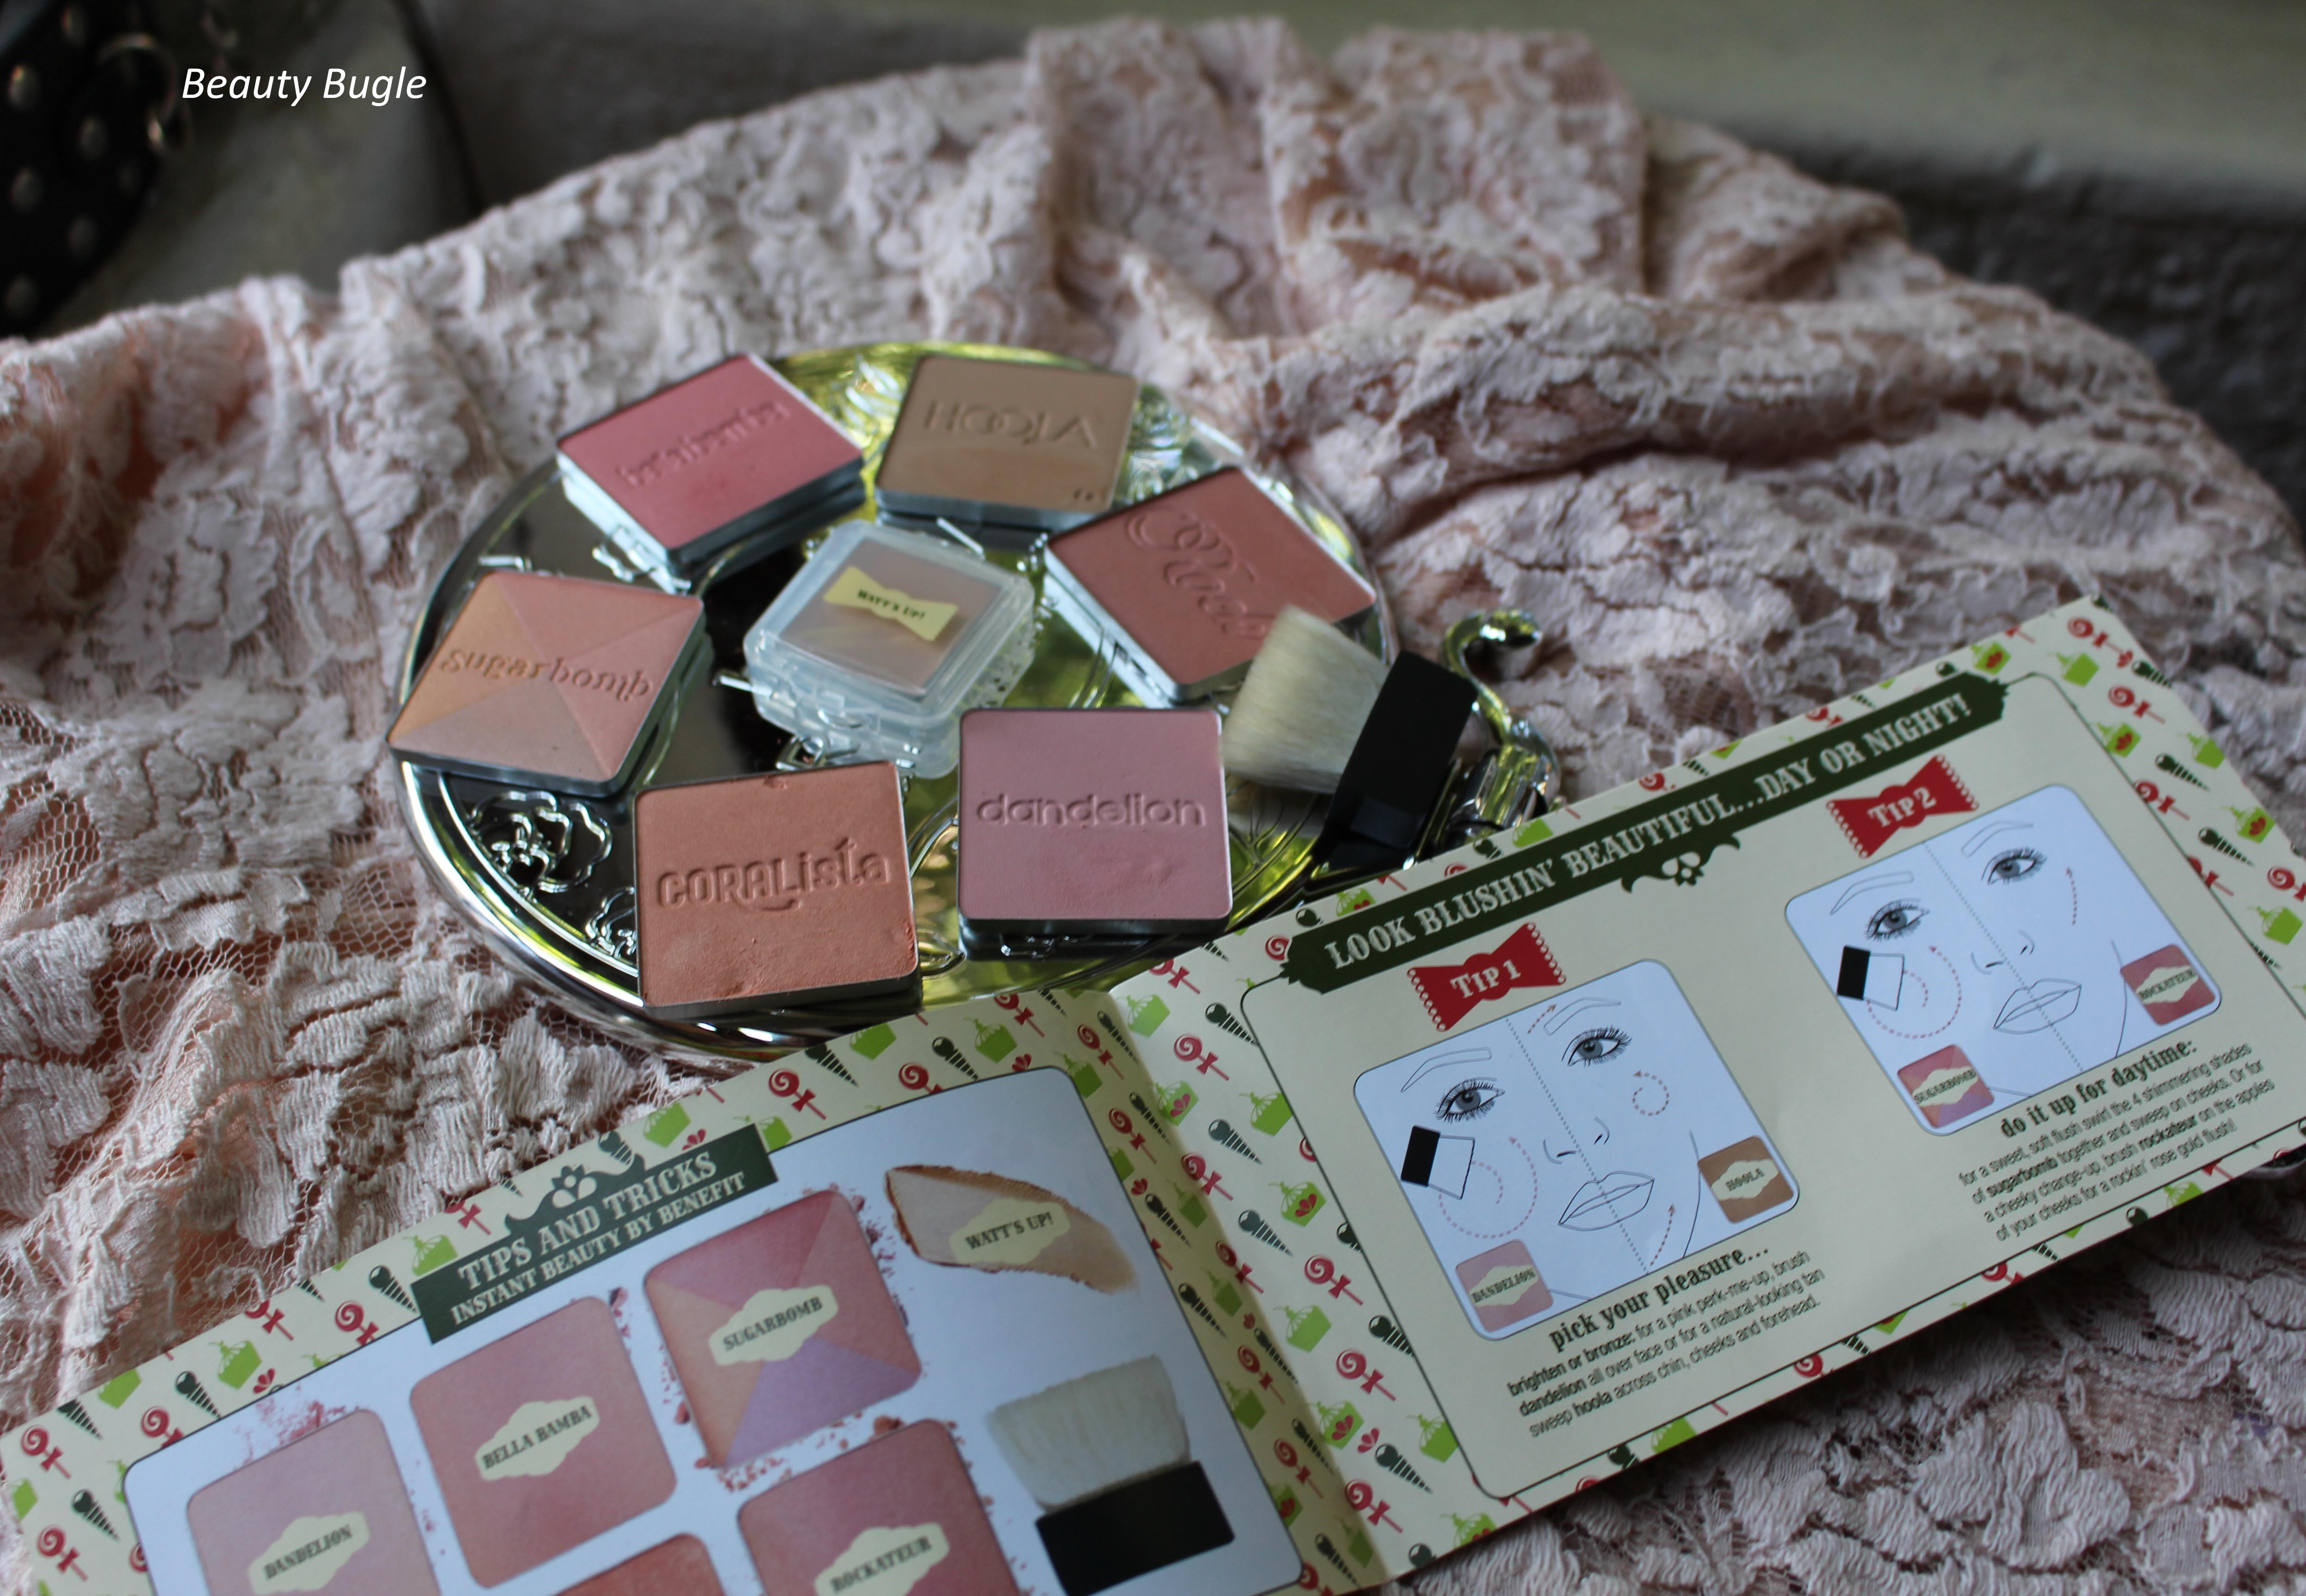 The whole lot of Benefit's Box 'o Powders